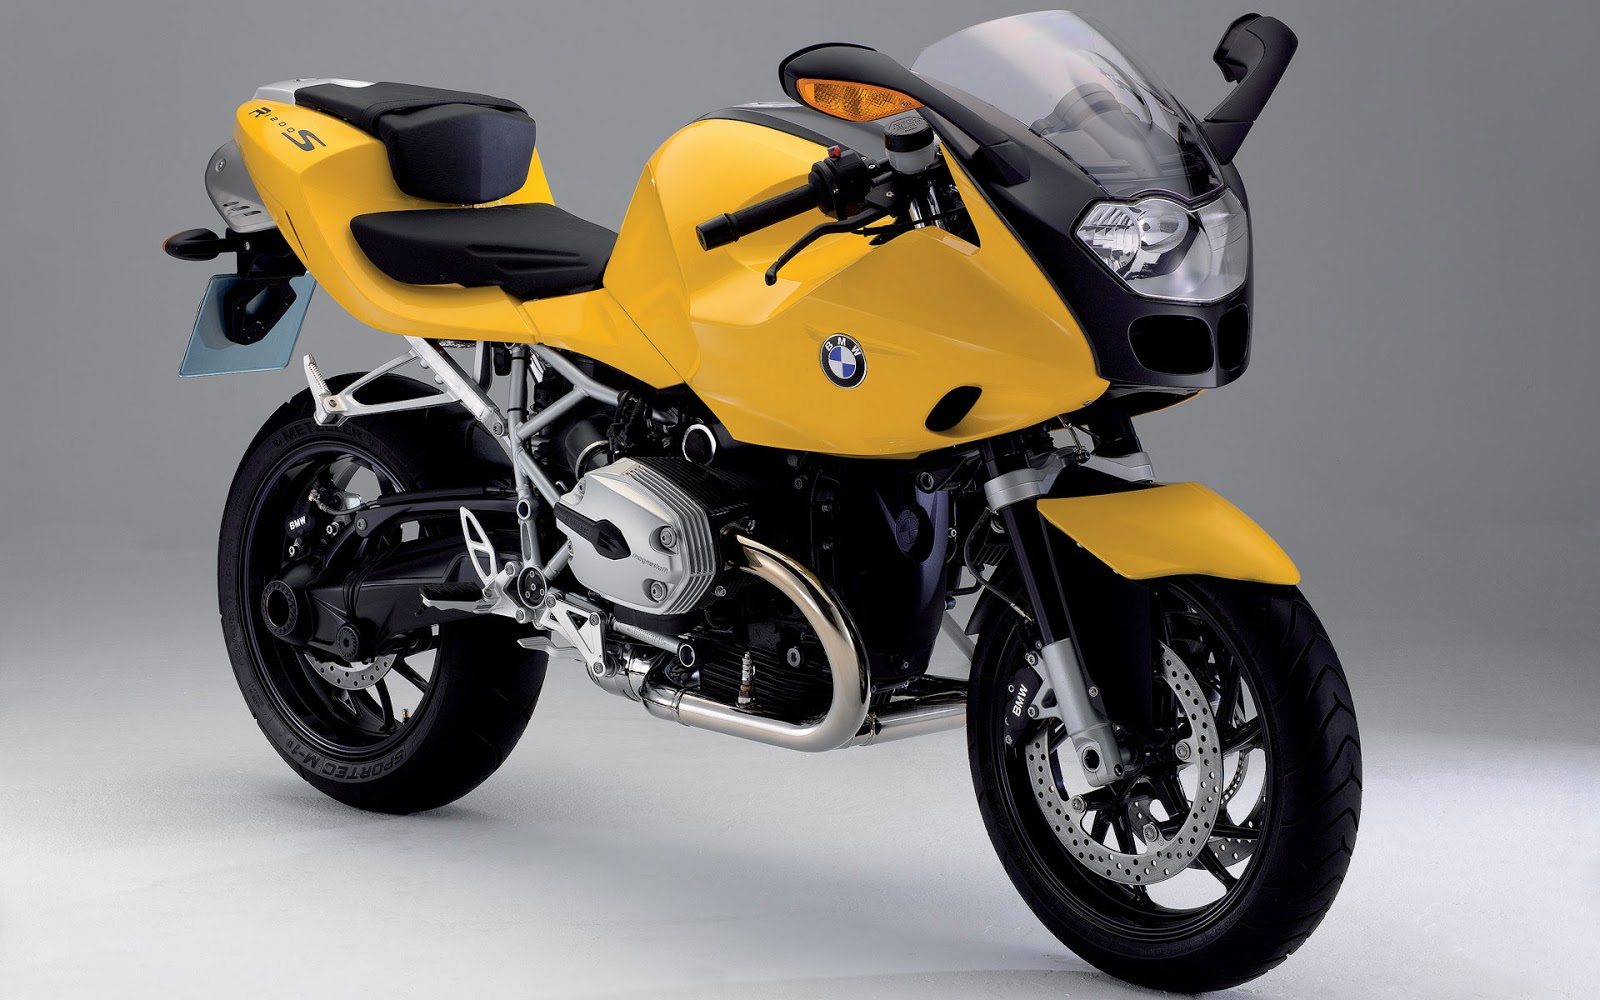 bmw sports bikeyamaha bikes - photo #18